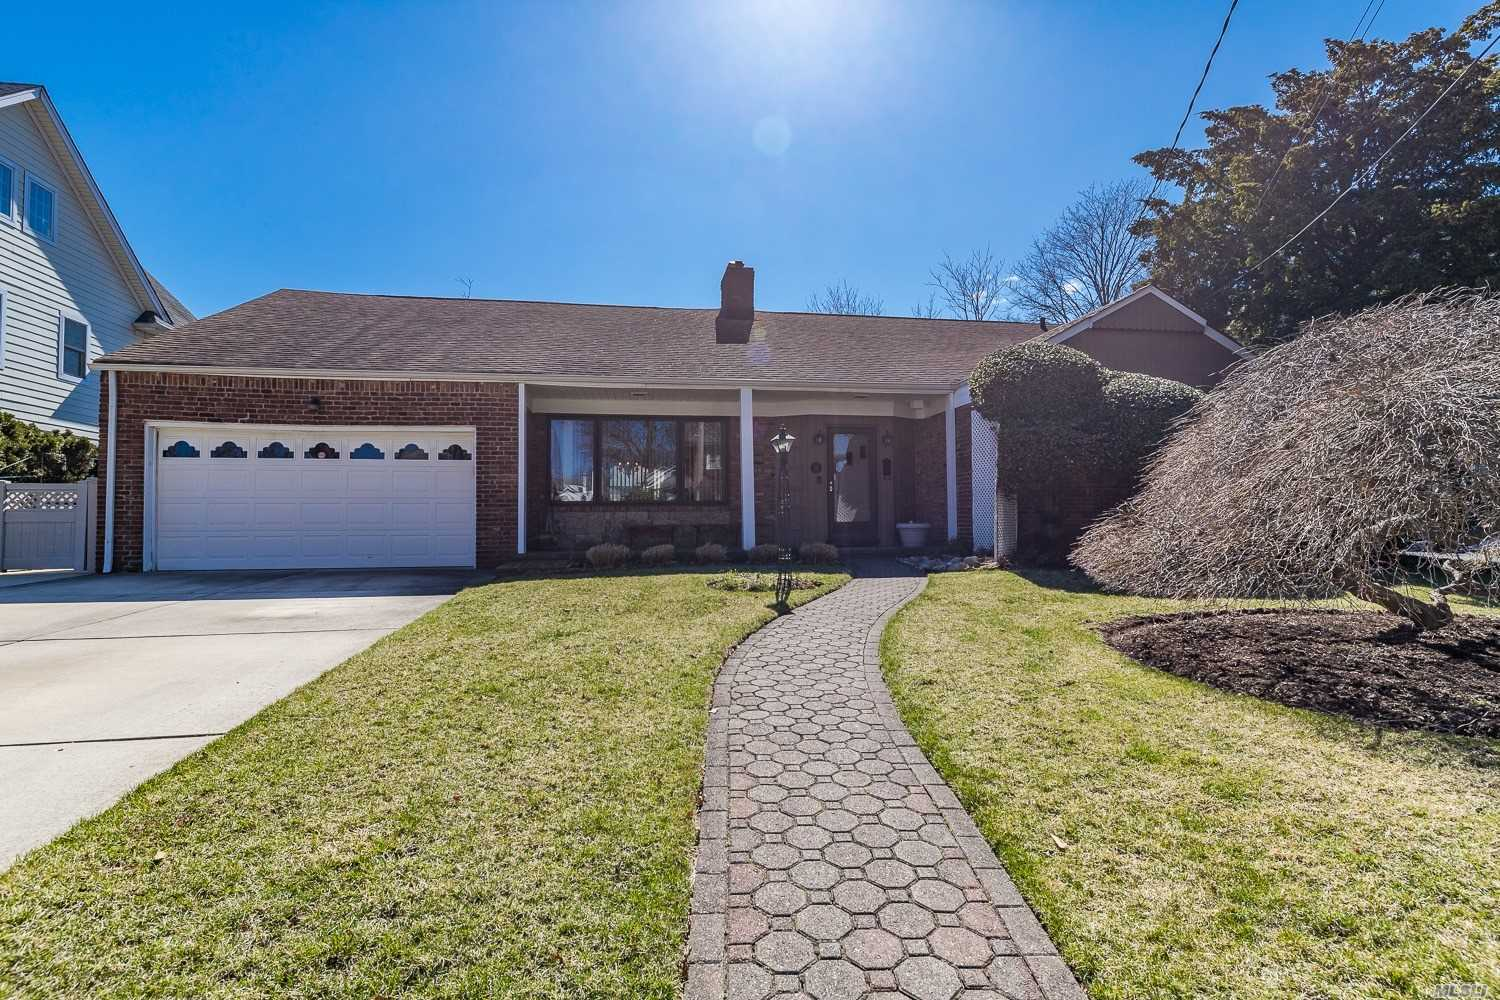 Pristine Ranch Opportunity Close to Village Center, and LIRR.It's Not Often That These Come to Market.Gorgeous, Bright LR/DR w/FPLC, EIK, Sunken, Sundrenched Den, Enormous Mstr Suite w/WIC, 2 Addt'l BR, Full Bath, Closets GALORE! Fin Basement Covers Full Footprint Adding Great Space for Recreation & Utilities.Pella Windows Throughout, Newer Roof. Potential to Expand Upward is Endless! See Attached Floor Plan